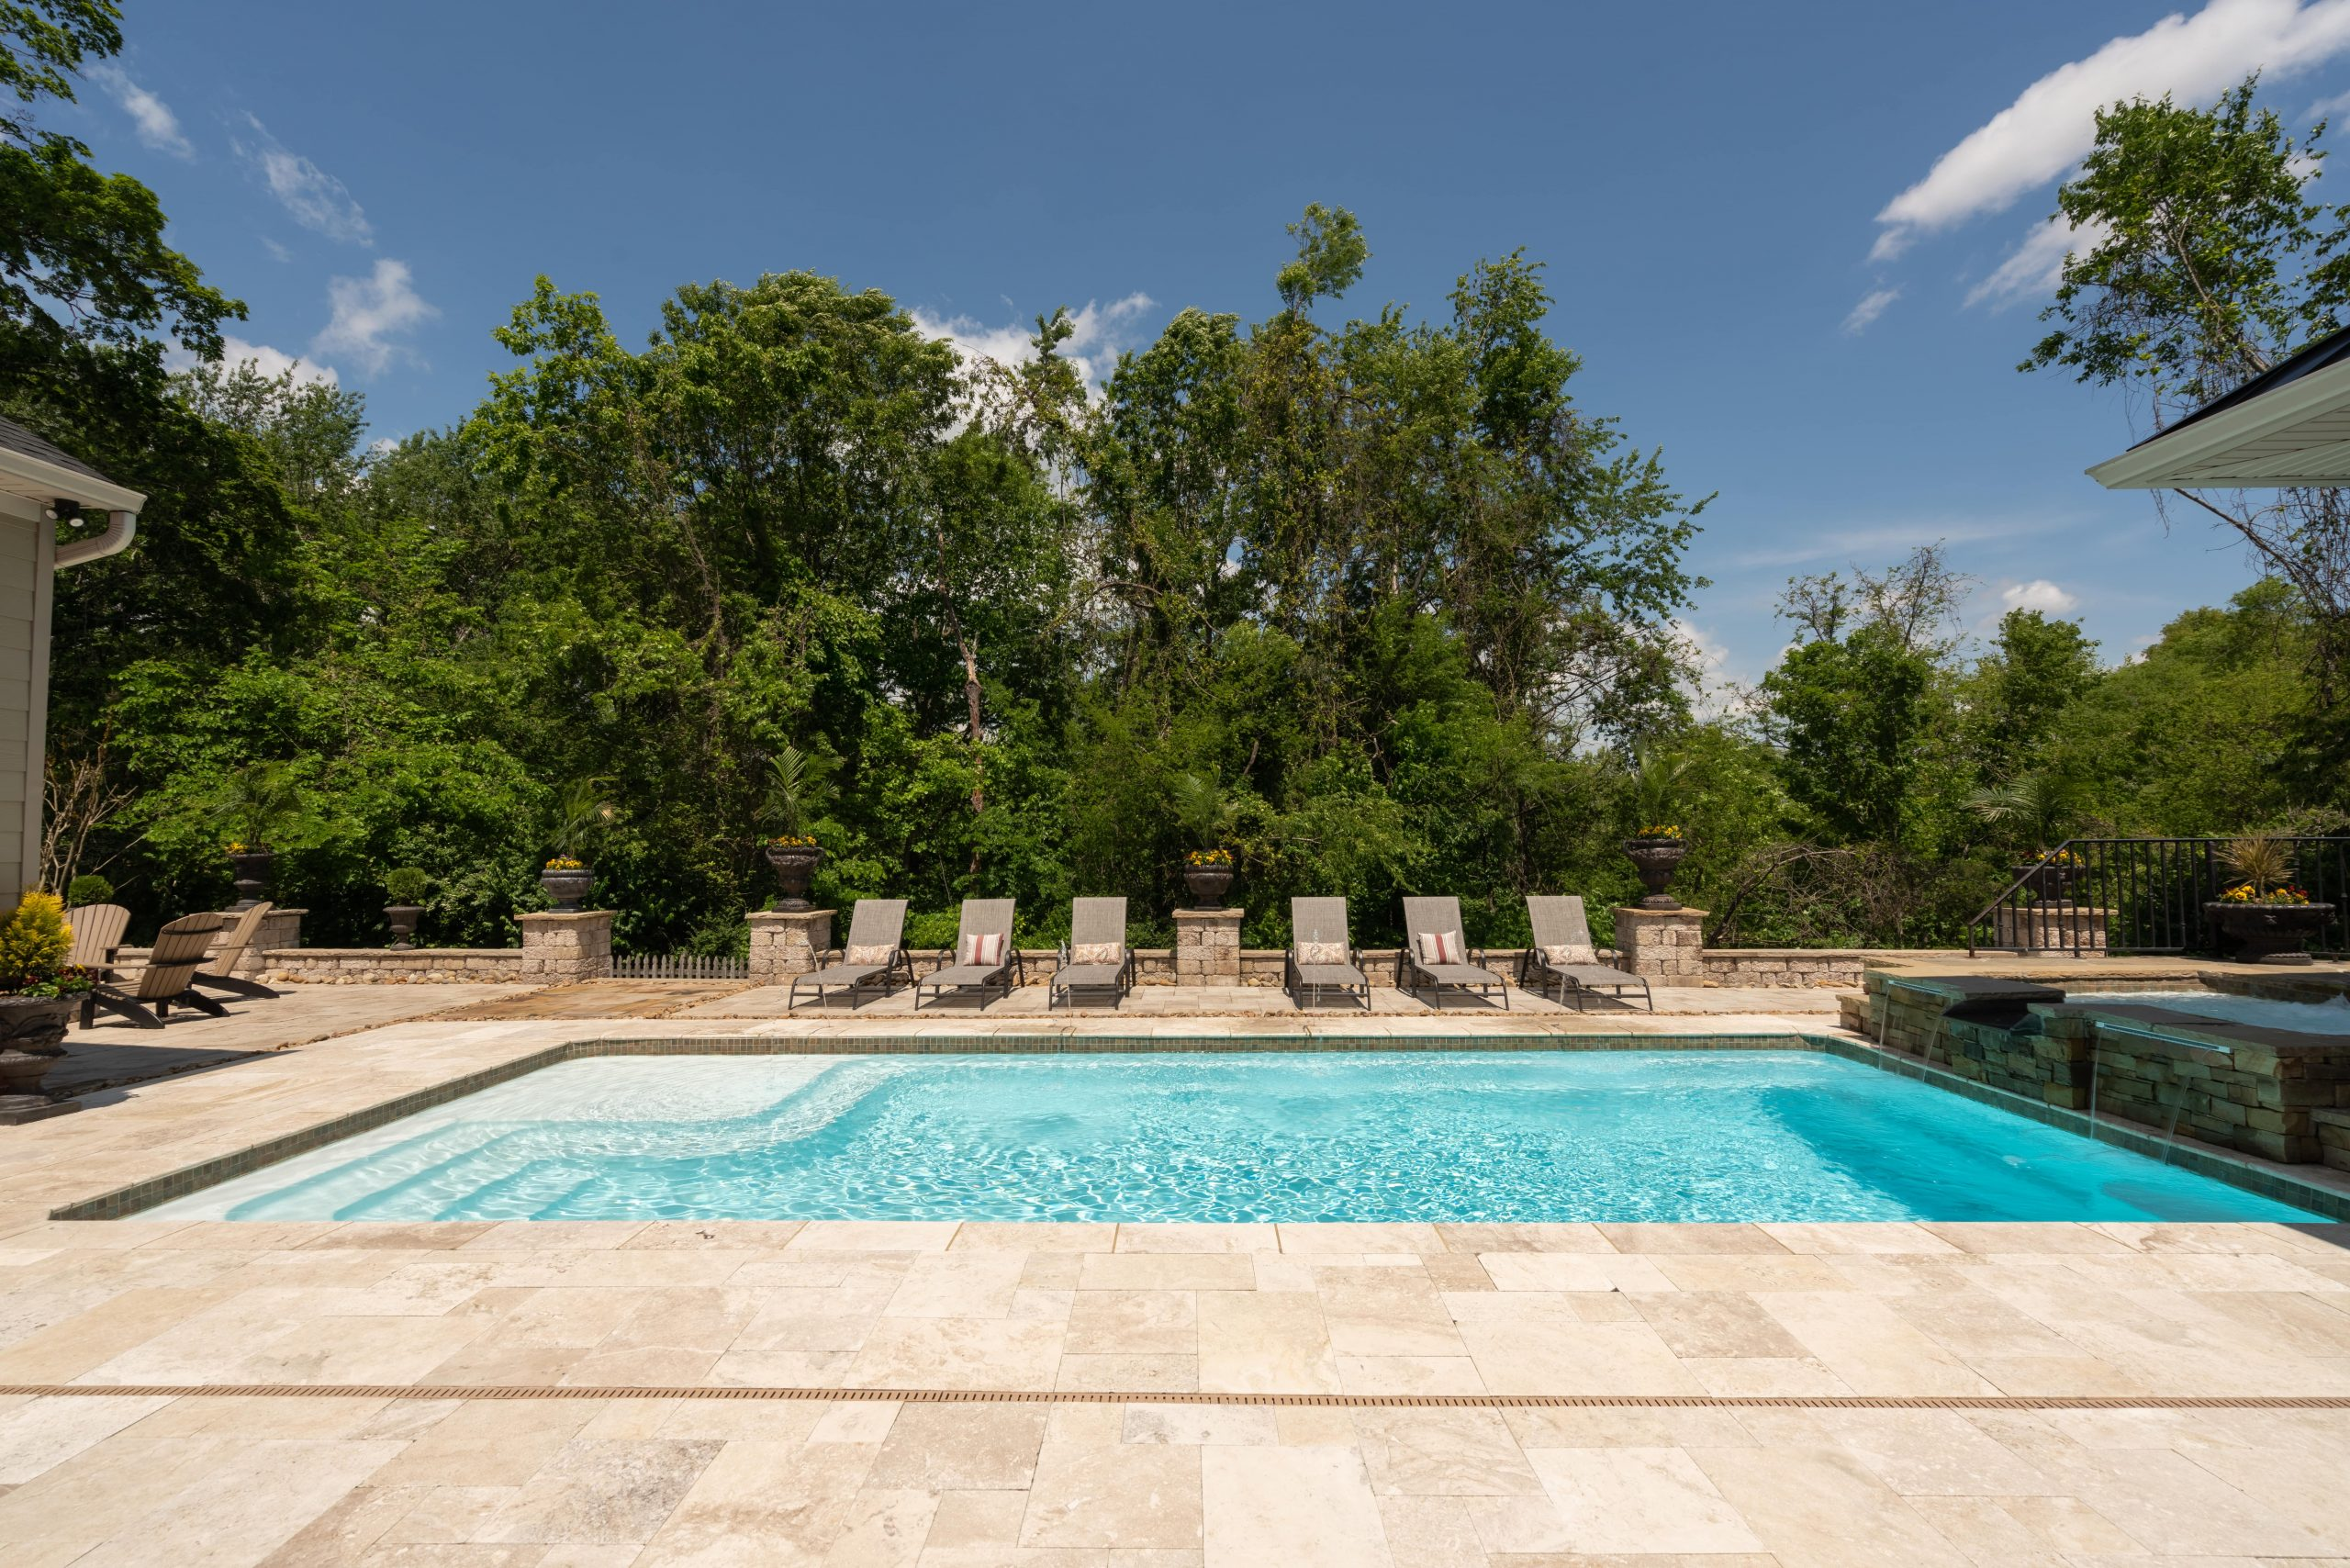 Franklin Stone pool with running water features and lounge chairs